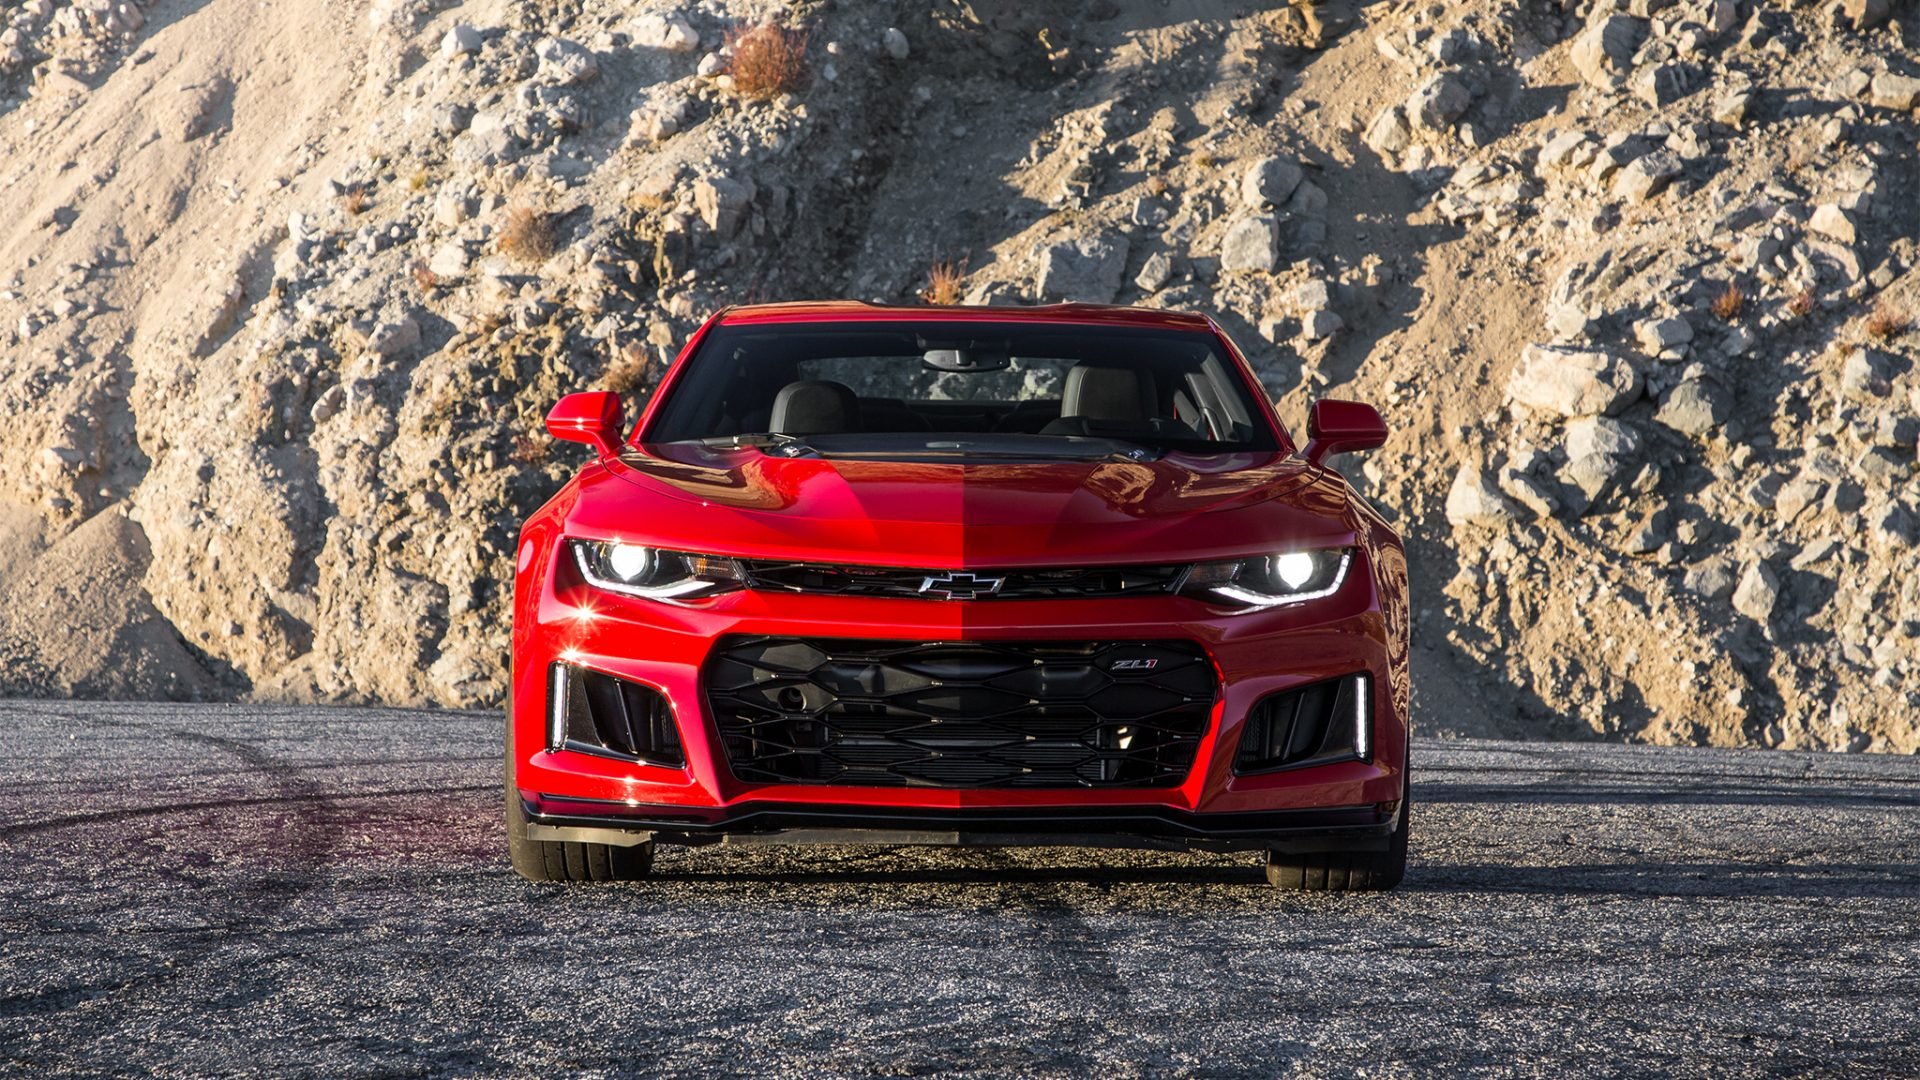 2017 Chevrolet Camaro Zl1 Red Wallpaper Hd Wallpaper